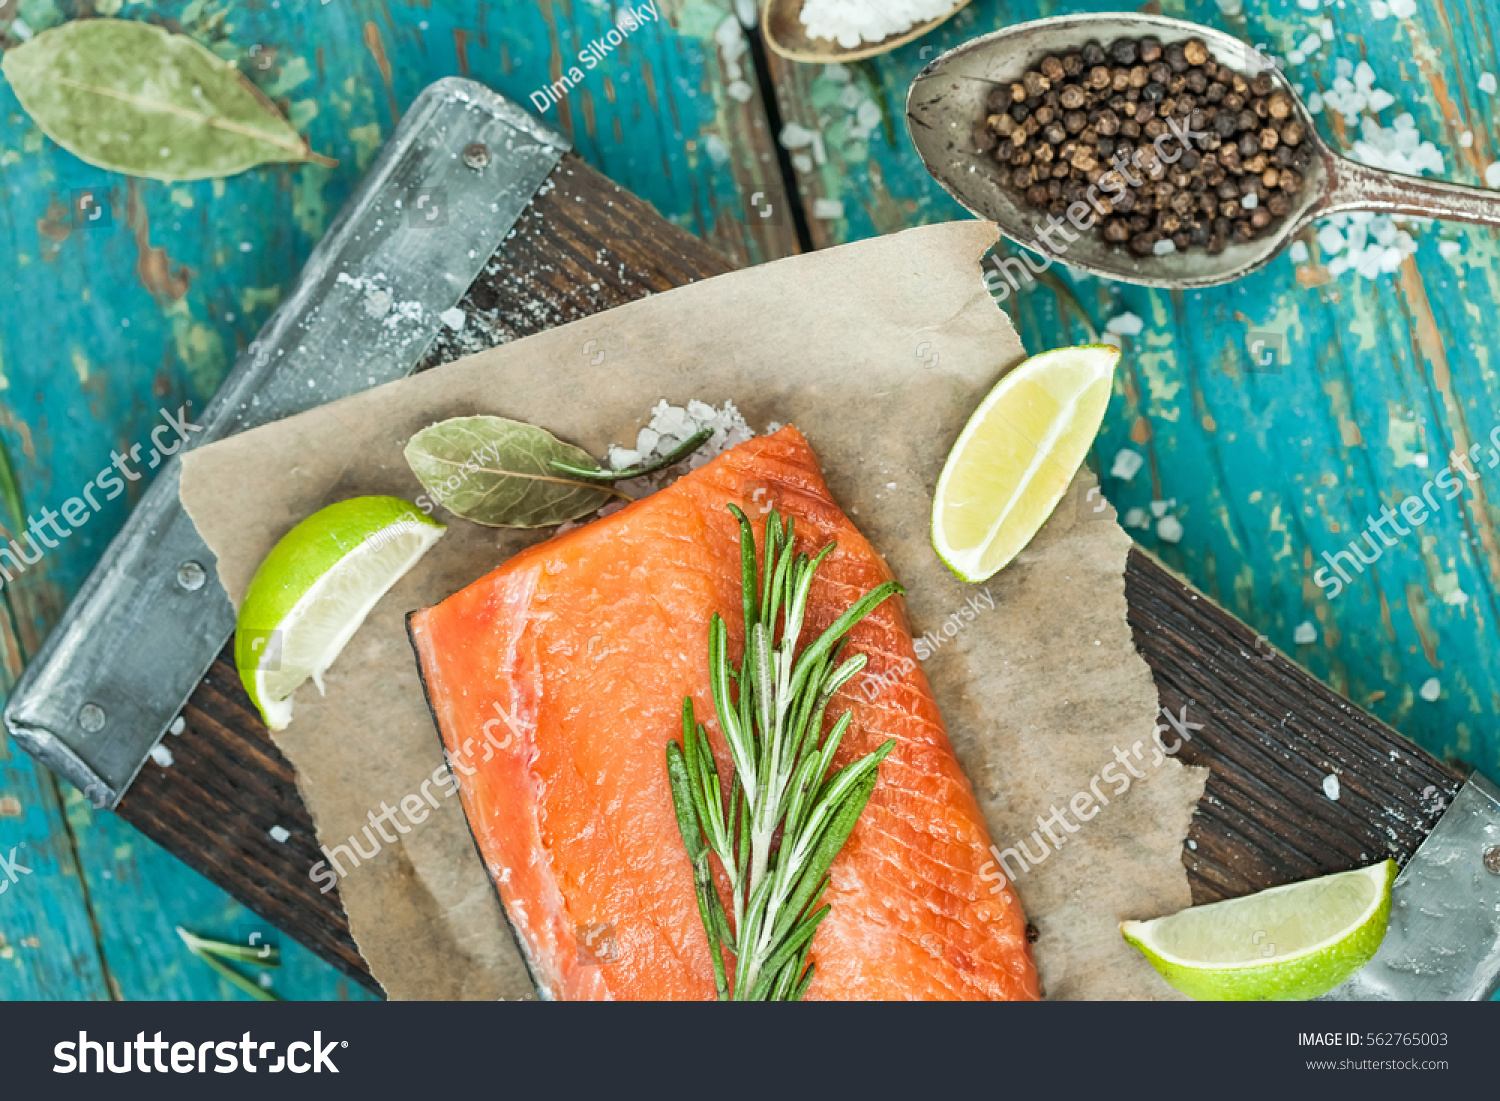 piece of raw salmon, spices, knife, board, spoon, olive oil, lemon ...